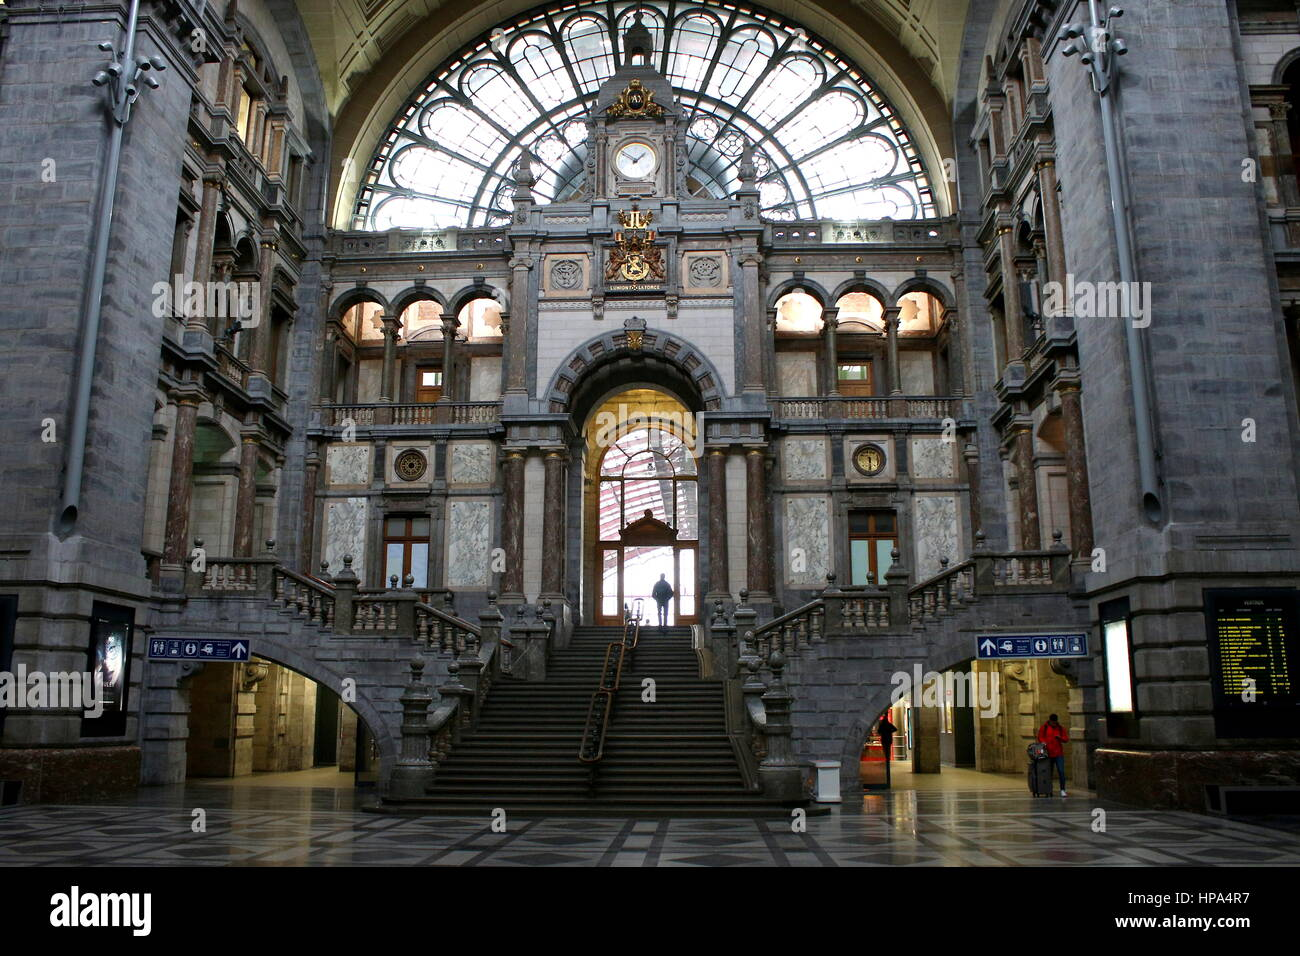 Vast central Hall of the  Early 20th century Antwerp Central Railway Station, Antwerpen, Belgium - Stock Image